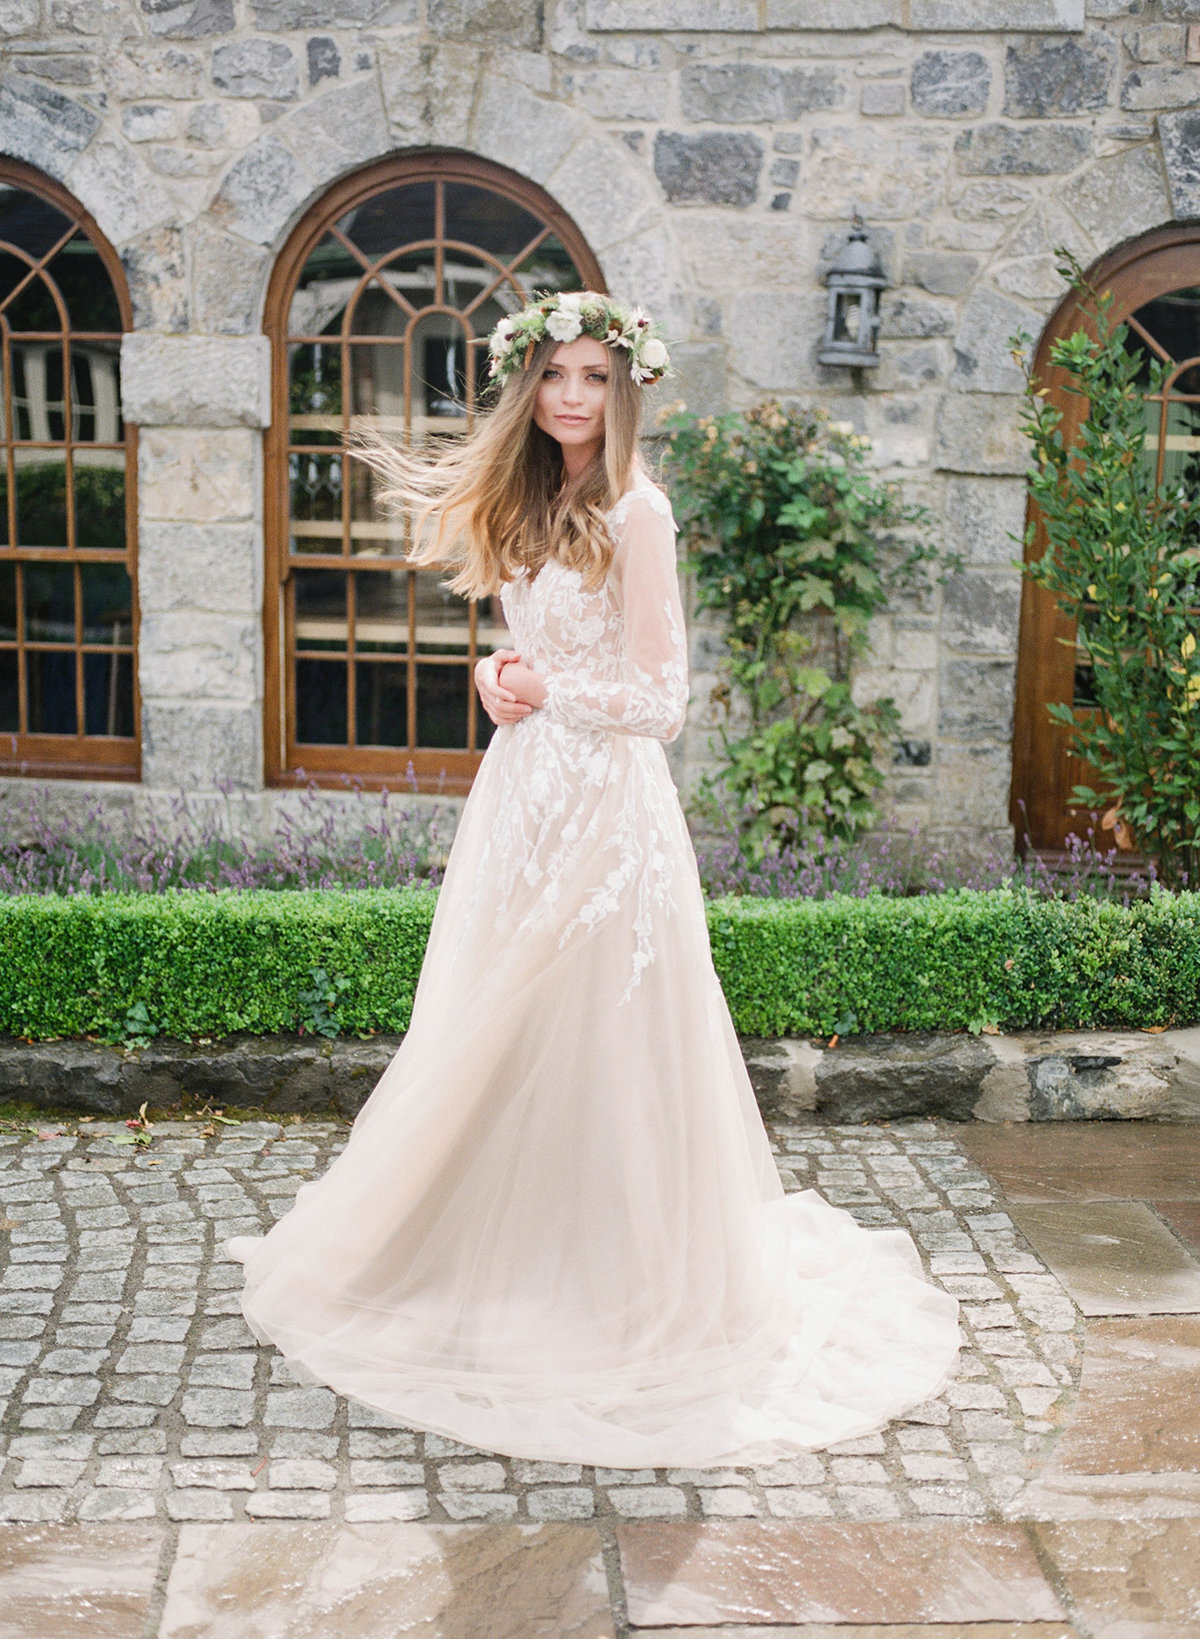 Destination Wedding Photographer - Ireland Editorial - Cliff at Lyons Kildare Ireland - Sarah Sunstrom Photography - 37